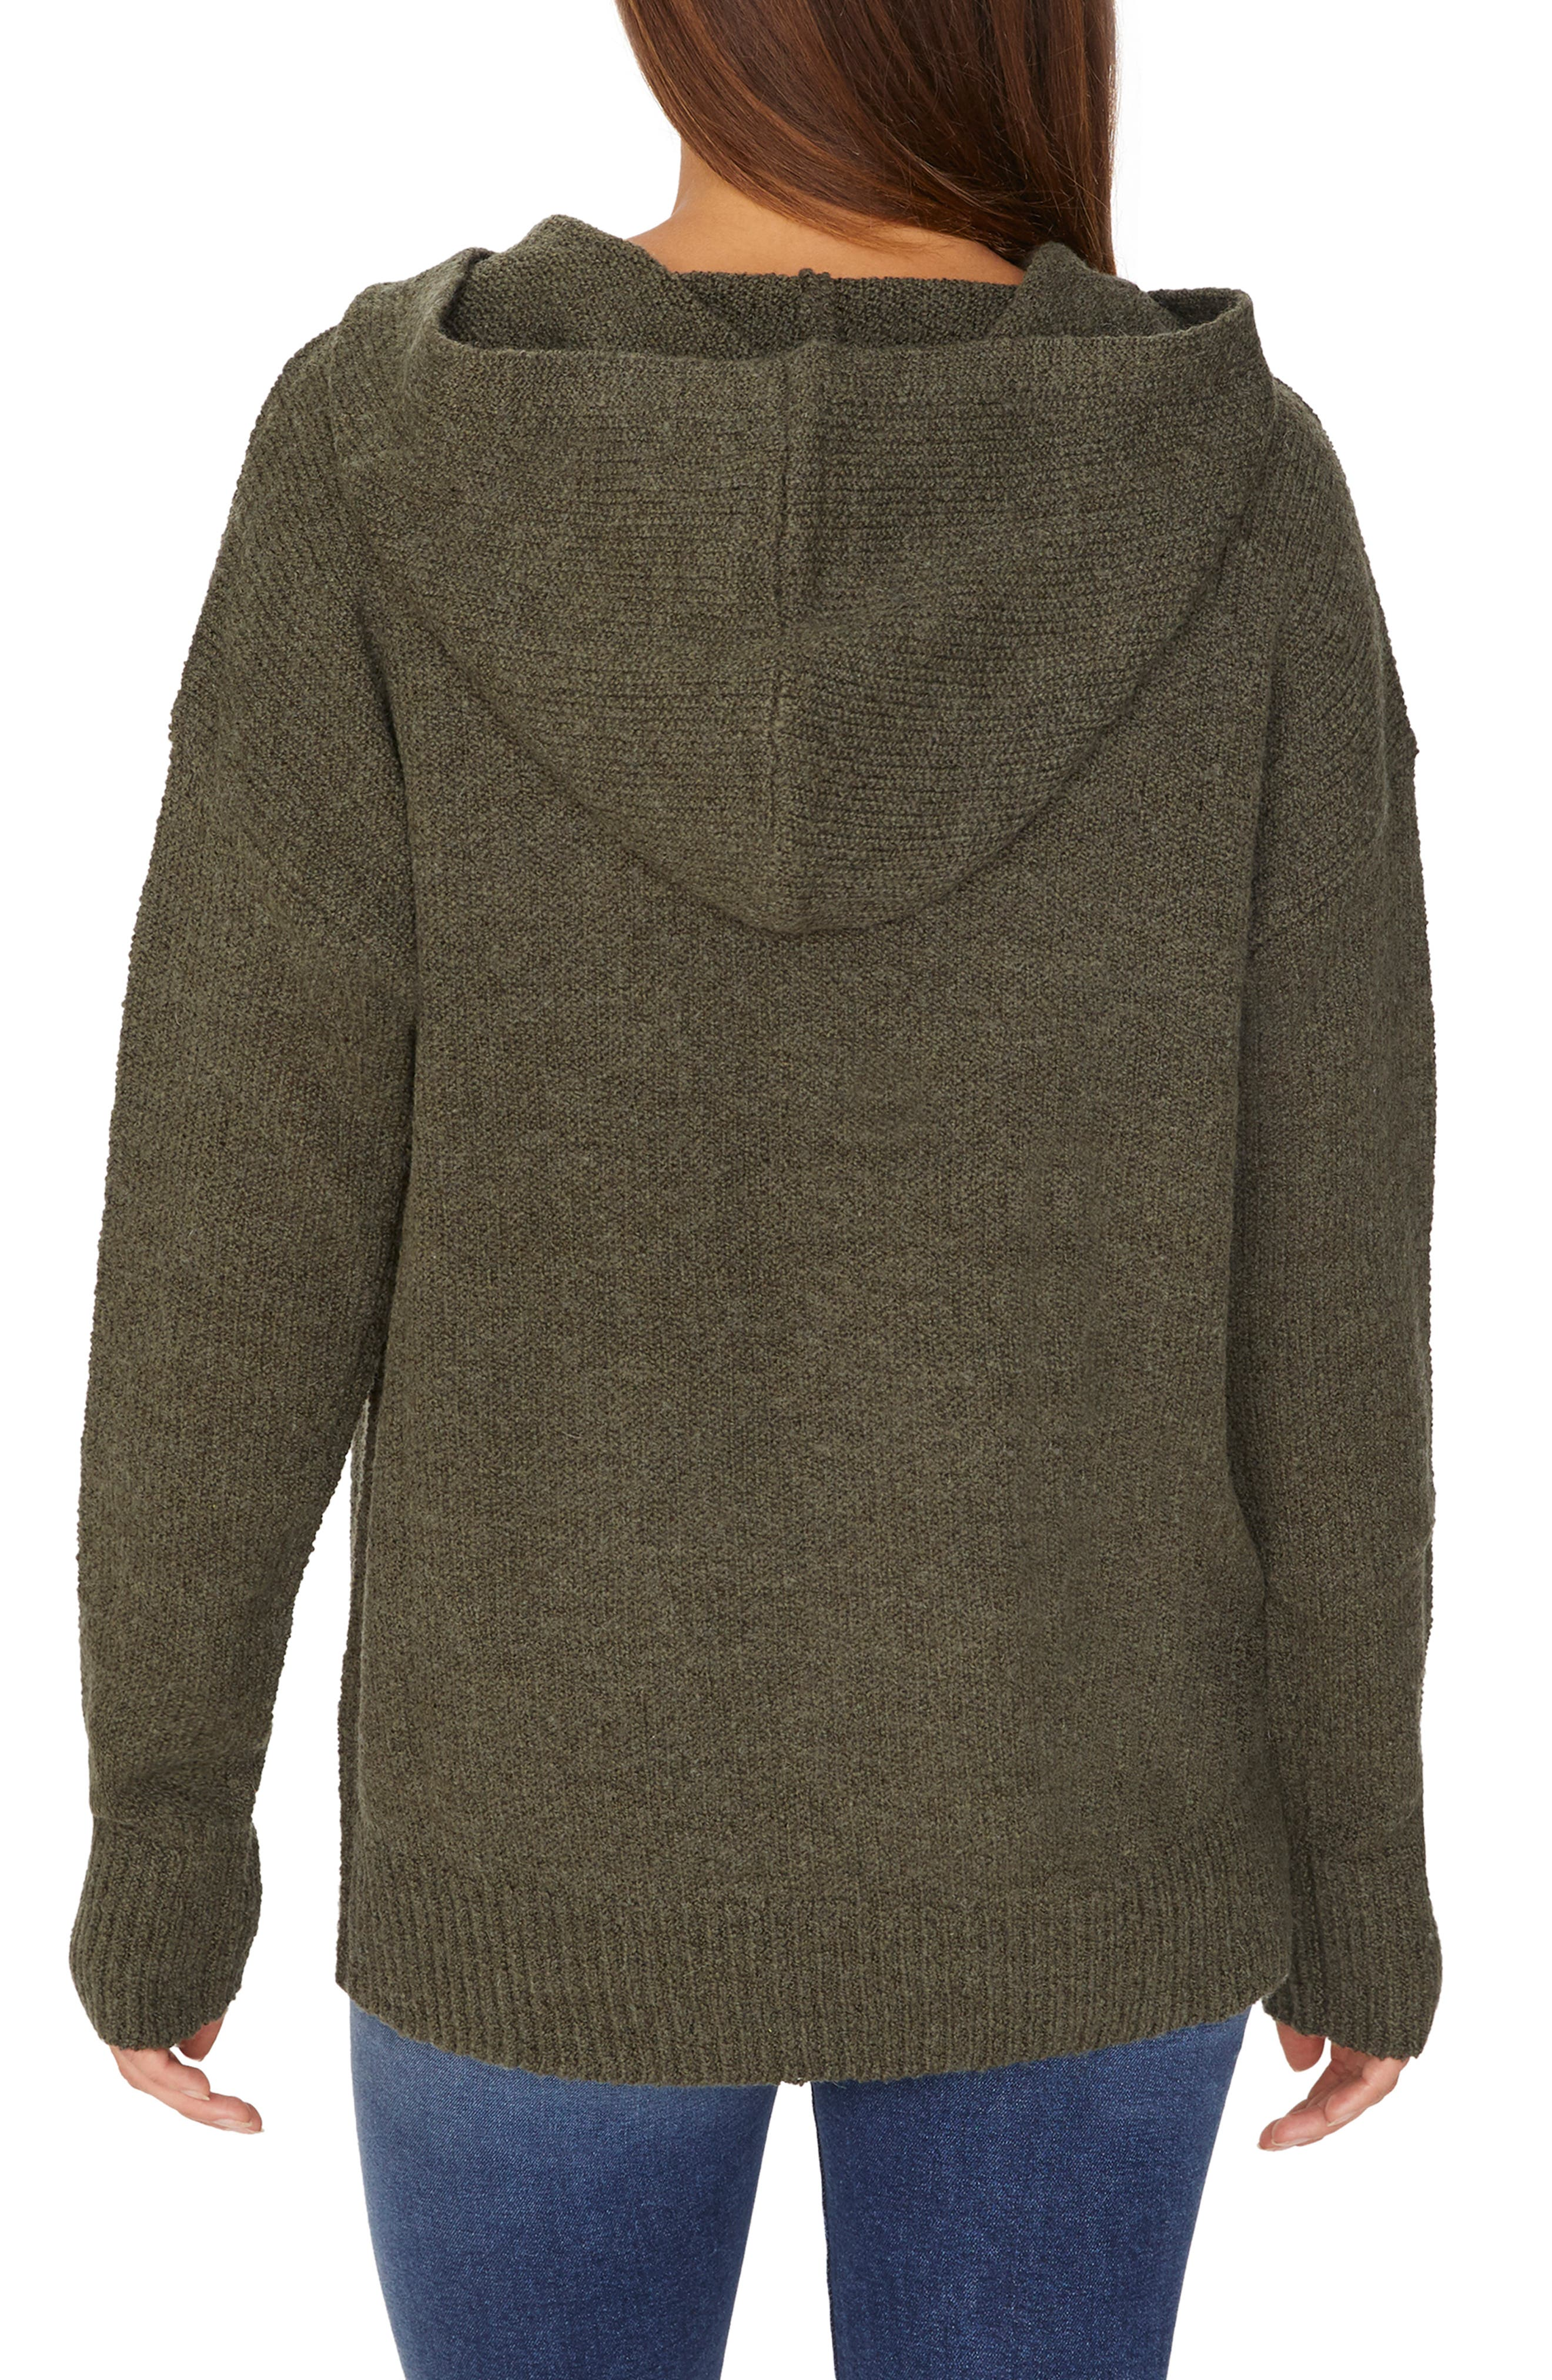 Sunday Morning Wool Blend Sweater Hoodie,                             Alternate thumbnail 2, color,                             HEATHER PROSPERITY GREEN